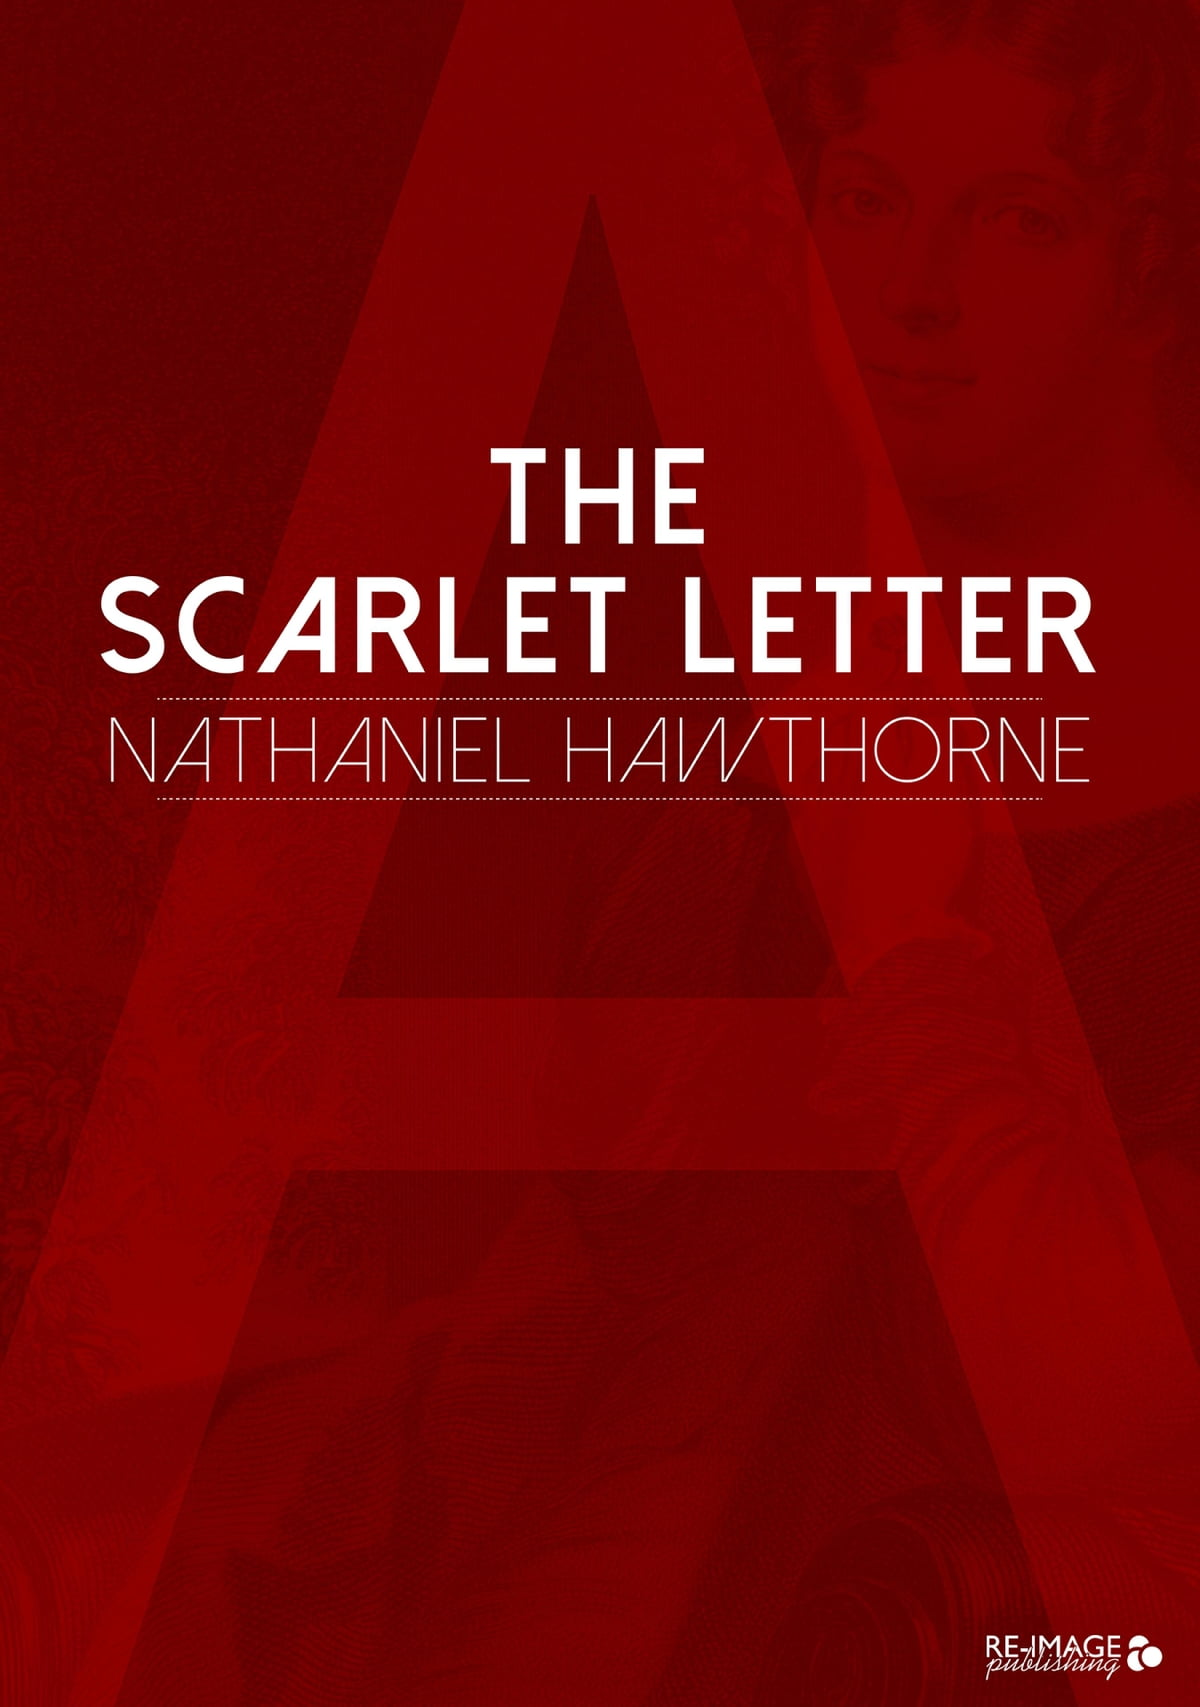 a summary of chapter 20 of nathaniel hawthornes novel the scarlet letter In chapter 20 of nathaniel hawthorne's the scarlet letter, hester prynne and the reverend dimmesdale feel renewed and excited as they wait out their plans to leave for europe 22 the scarlet.